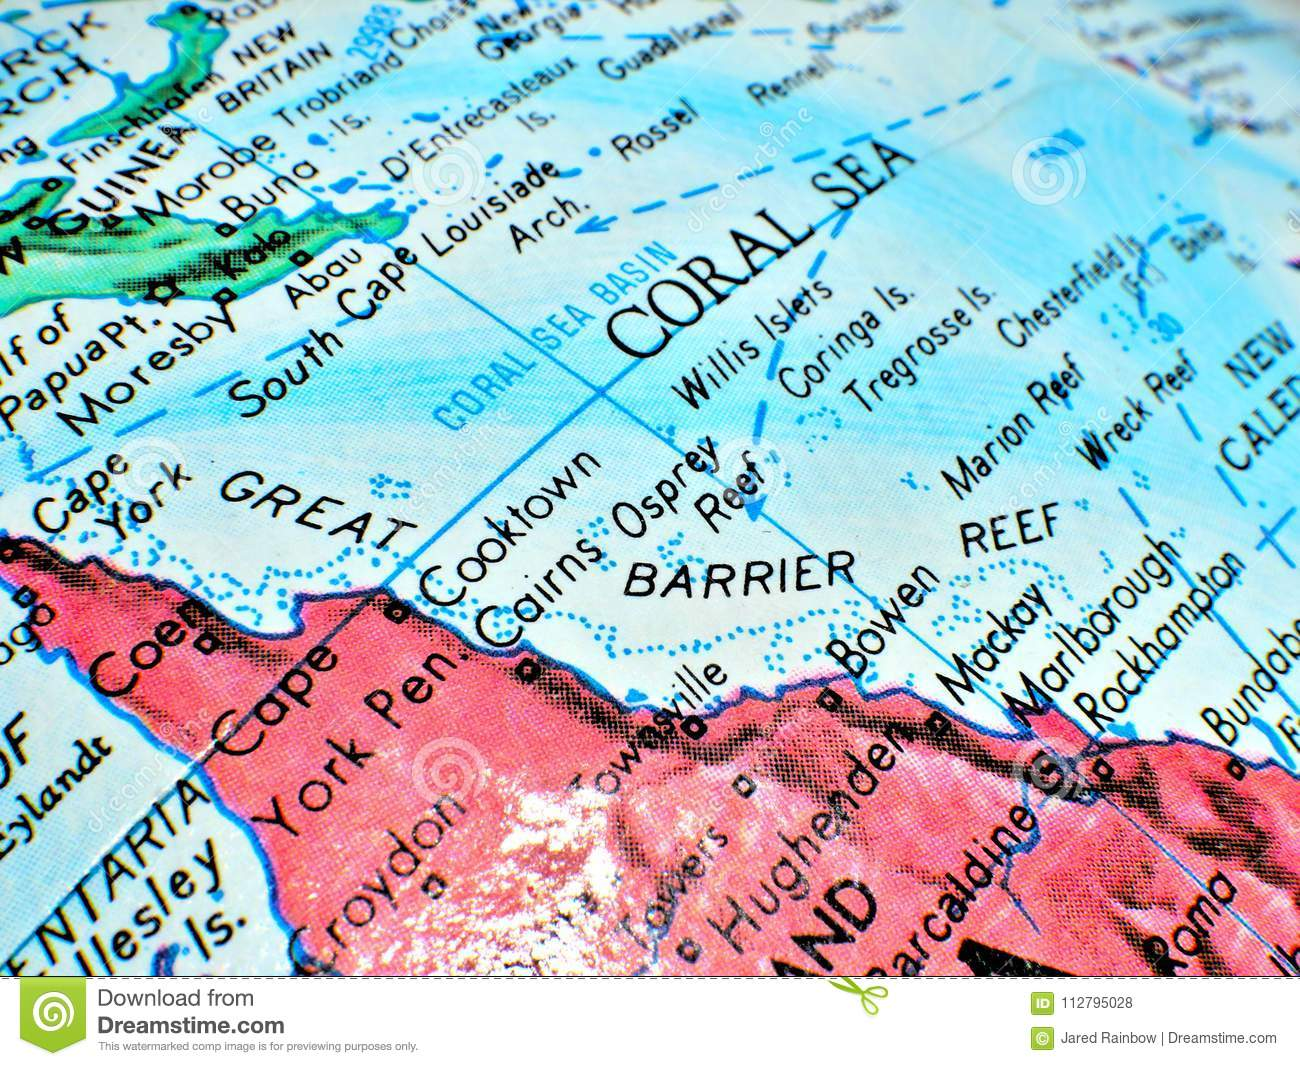 Barrier Reef Australia Map.Great Barrier Reef Coral Sea Australia Focus Macro Shot On Globe Map